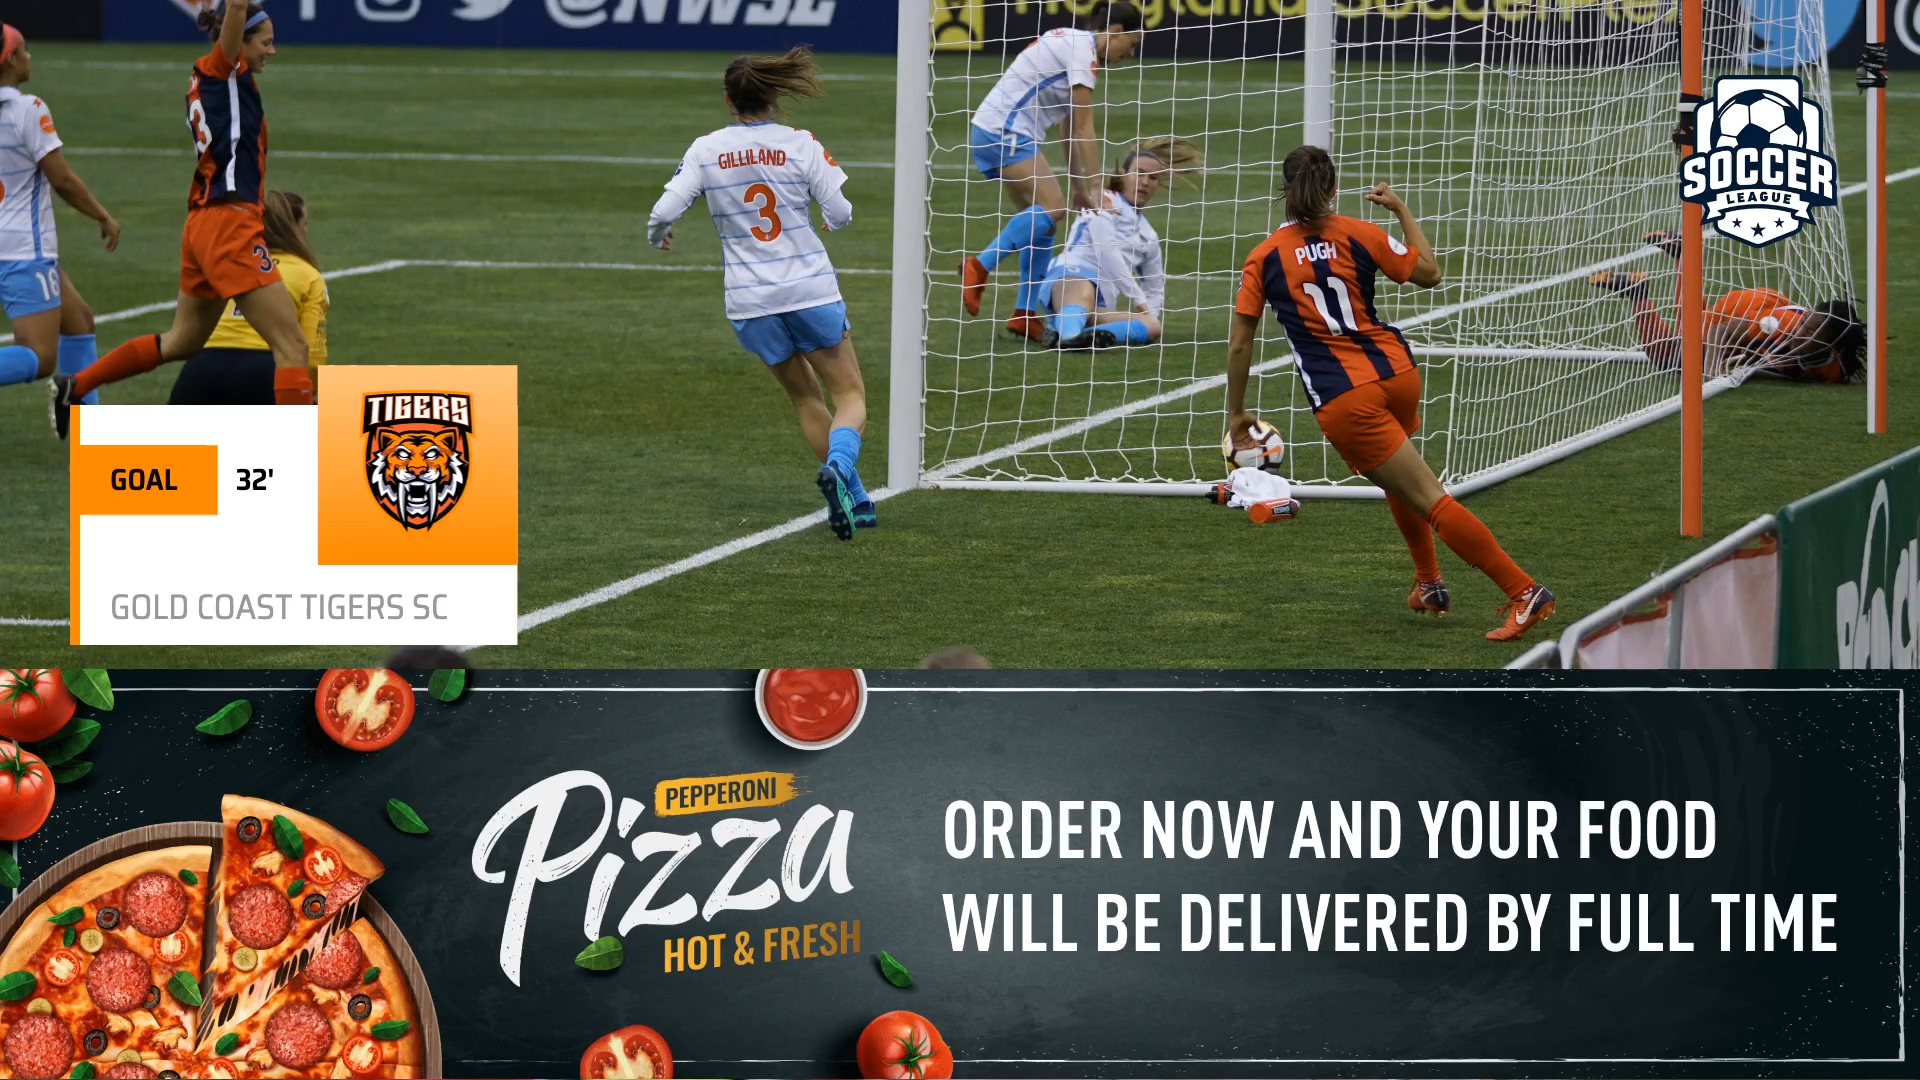 An example of an advertisement attached to a goal event graphic, powered by LIGR.Live.